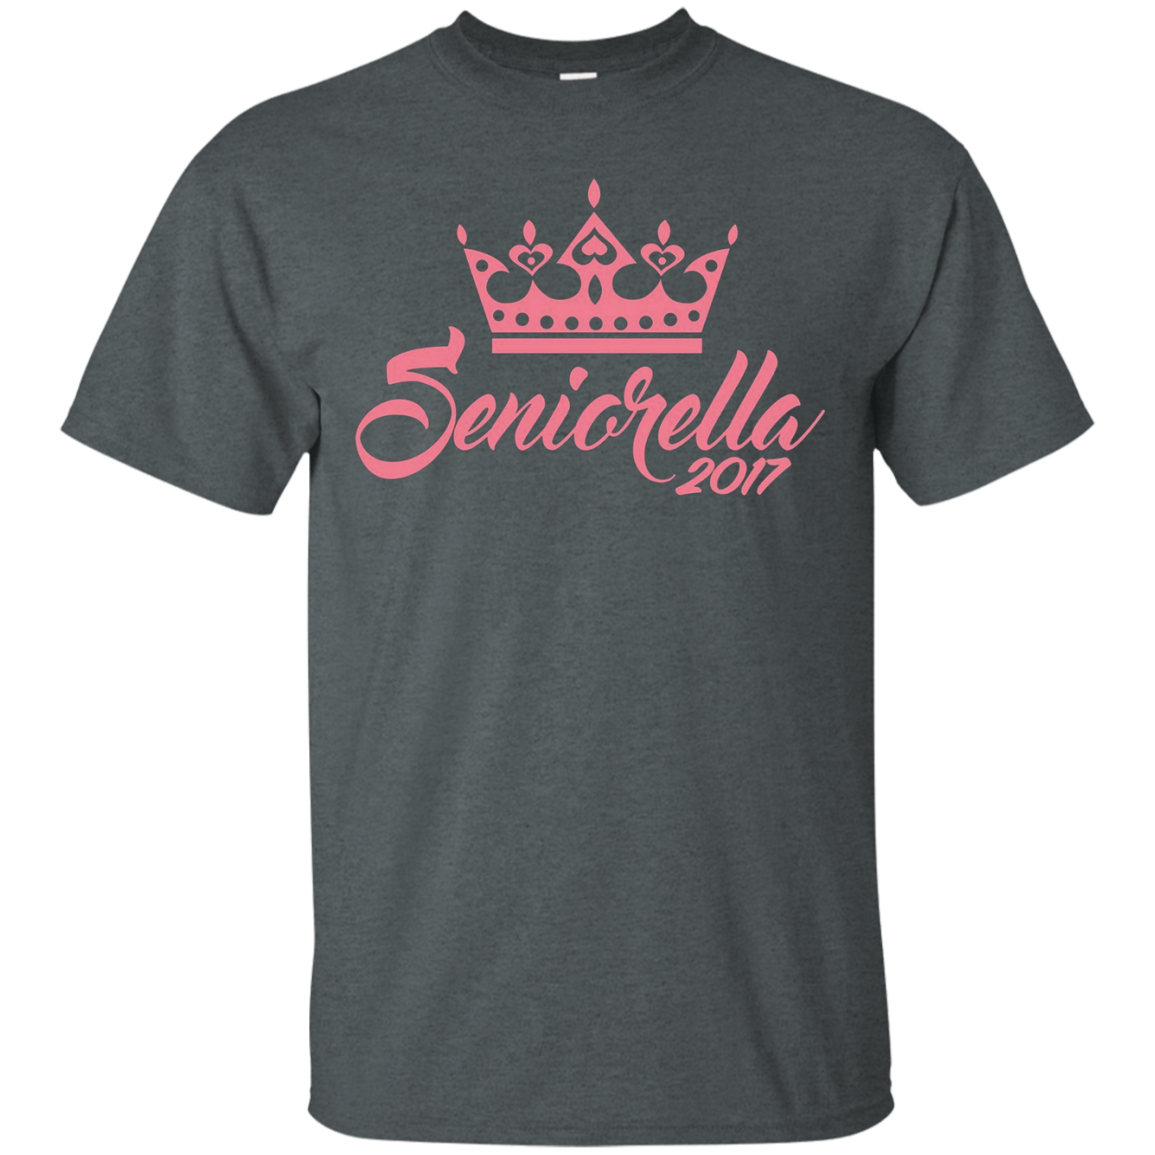 Seniorella 2017 T Shirt - Senior Class of 2017 Graduation